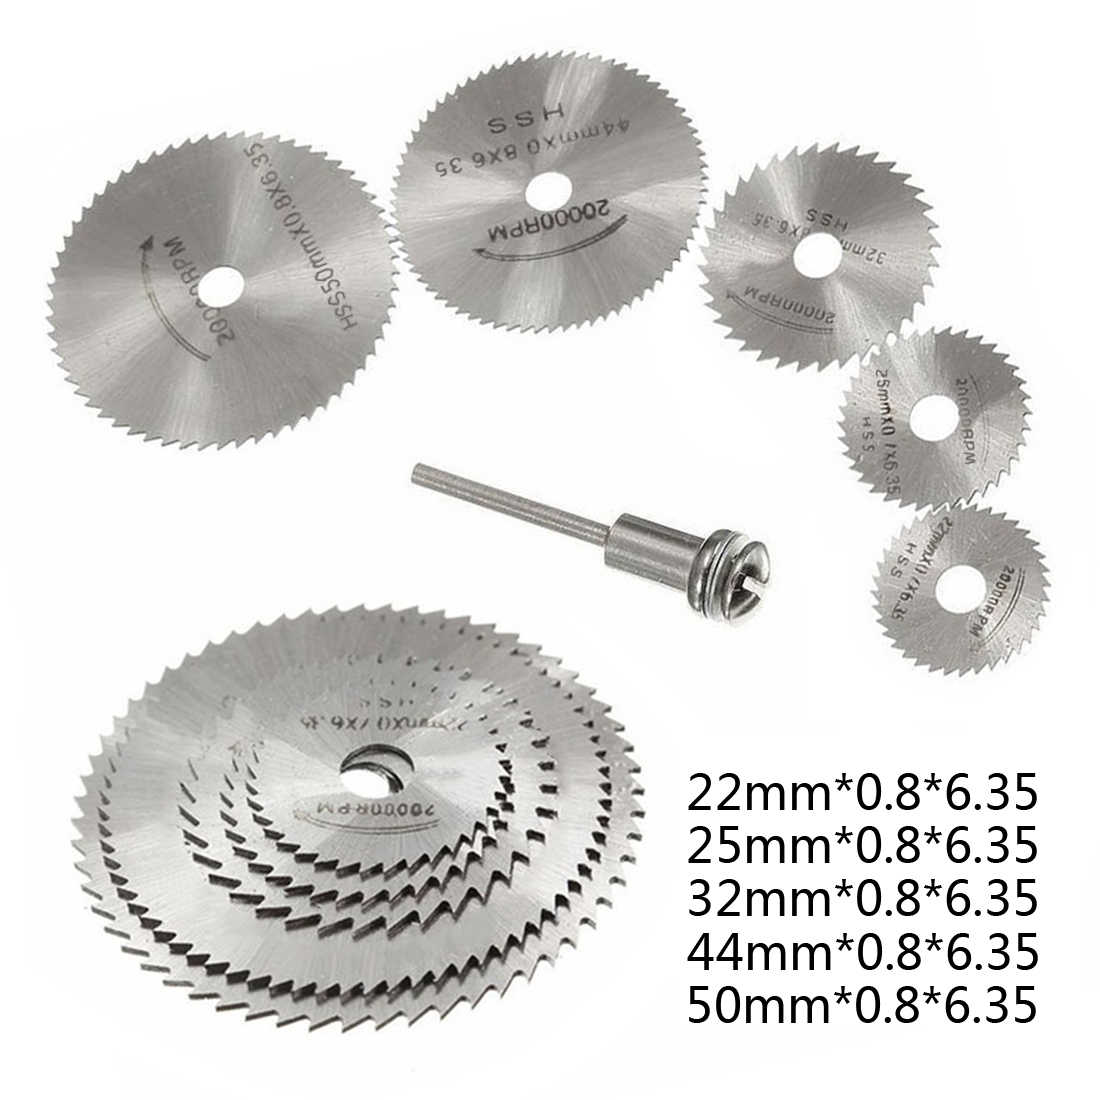 10pcs Set Rotary Tool Circular Saw Blades Cutting Wheel Discs Mandrel for Dremel